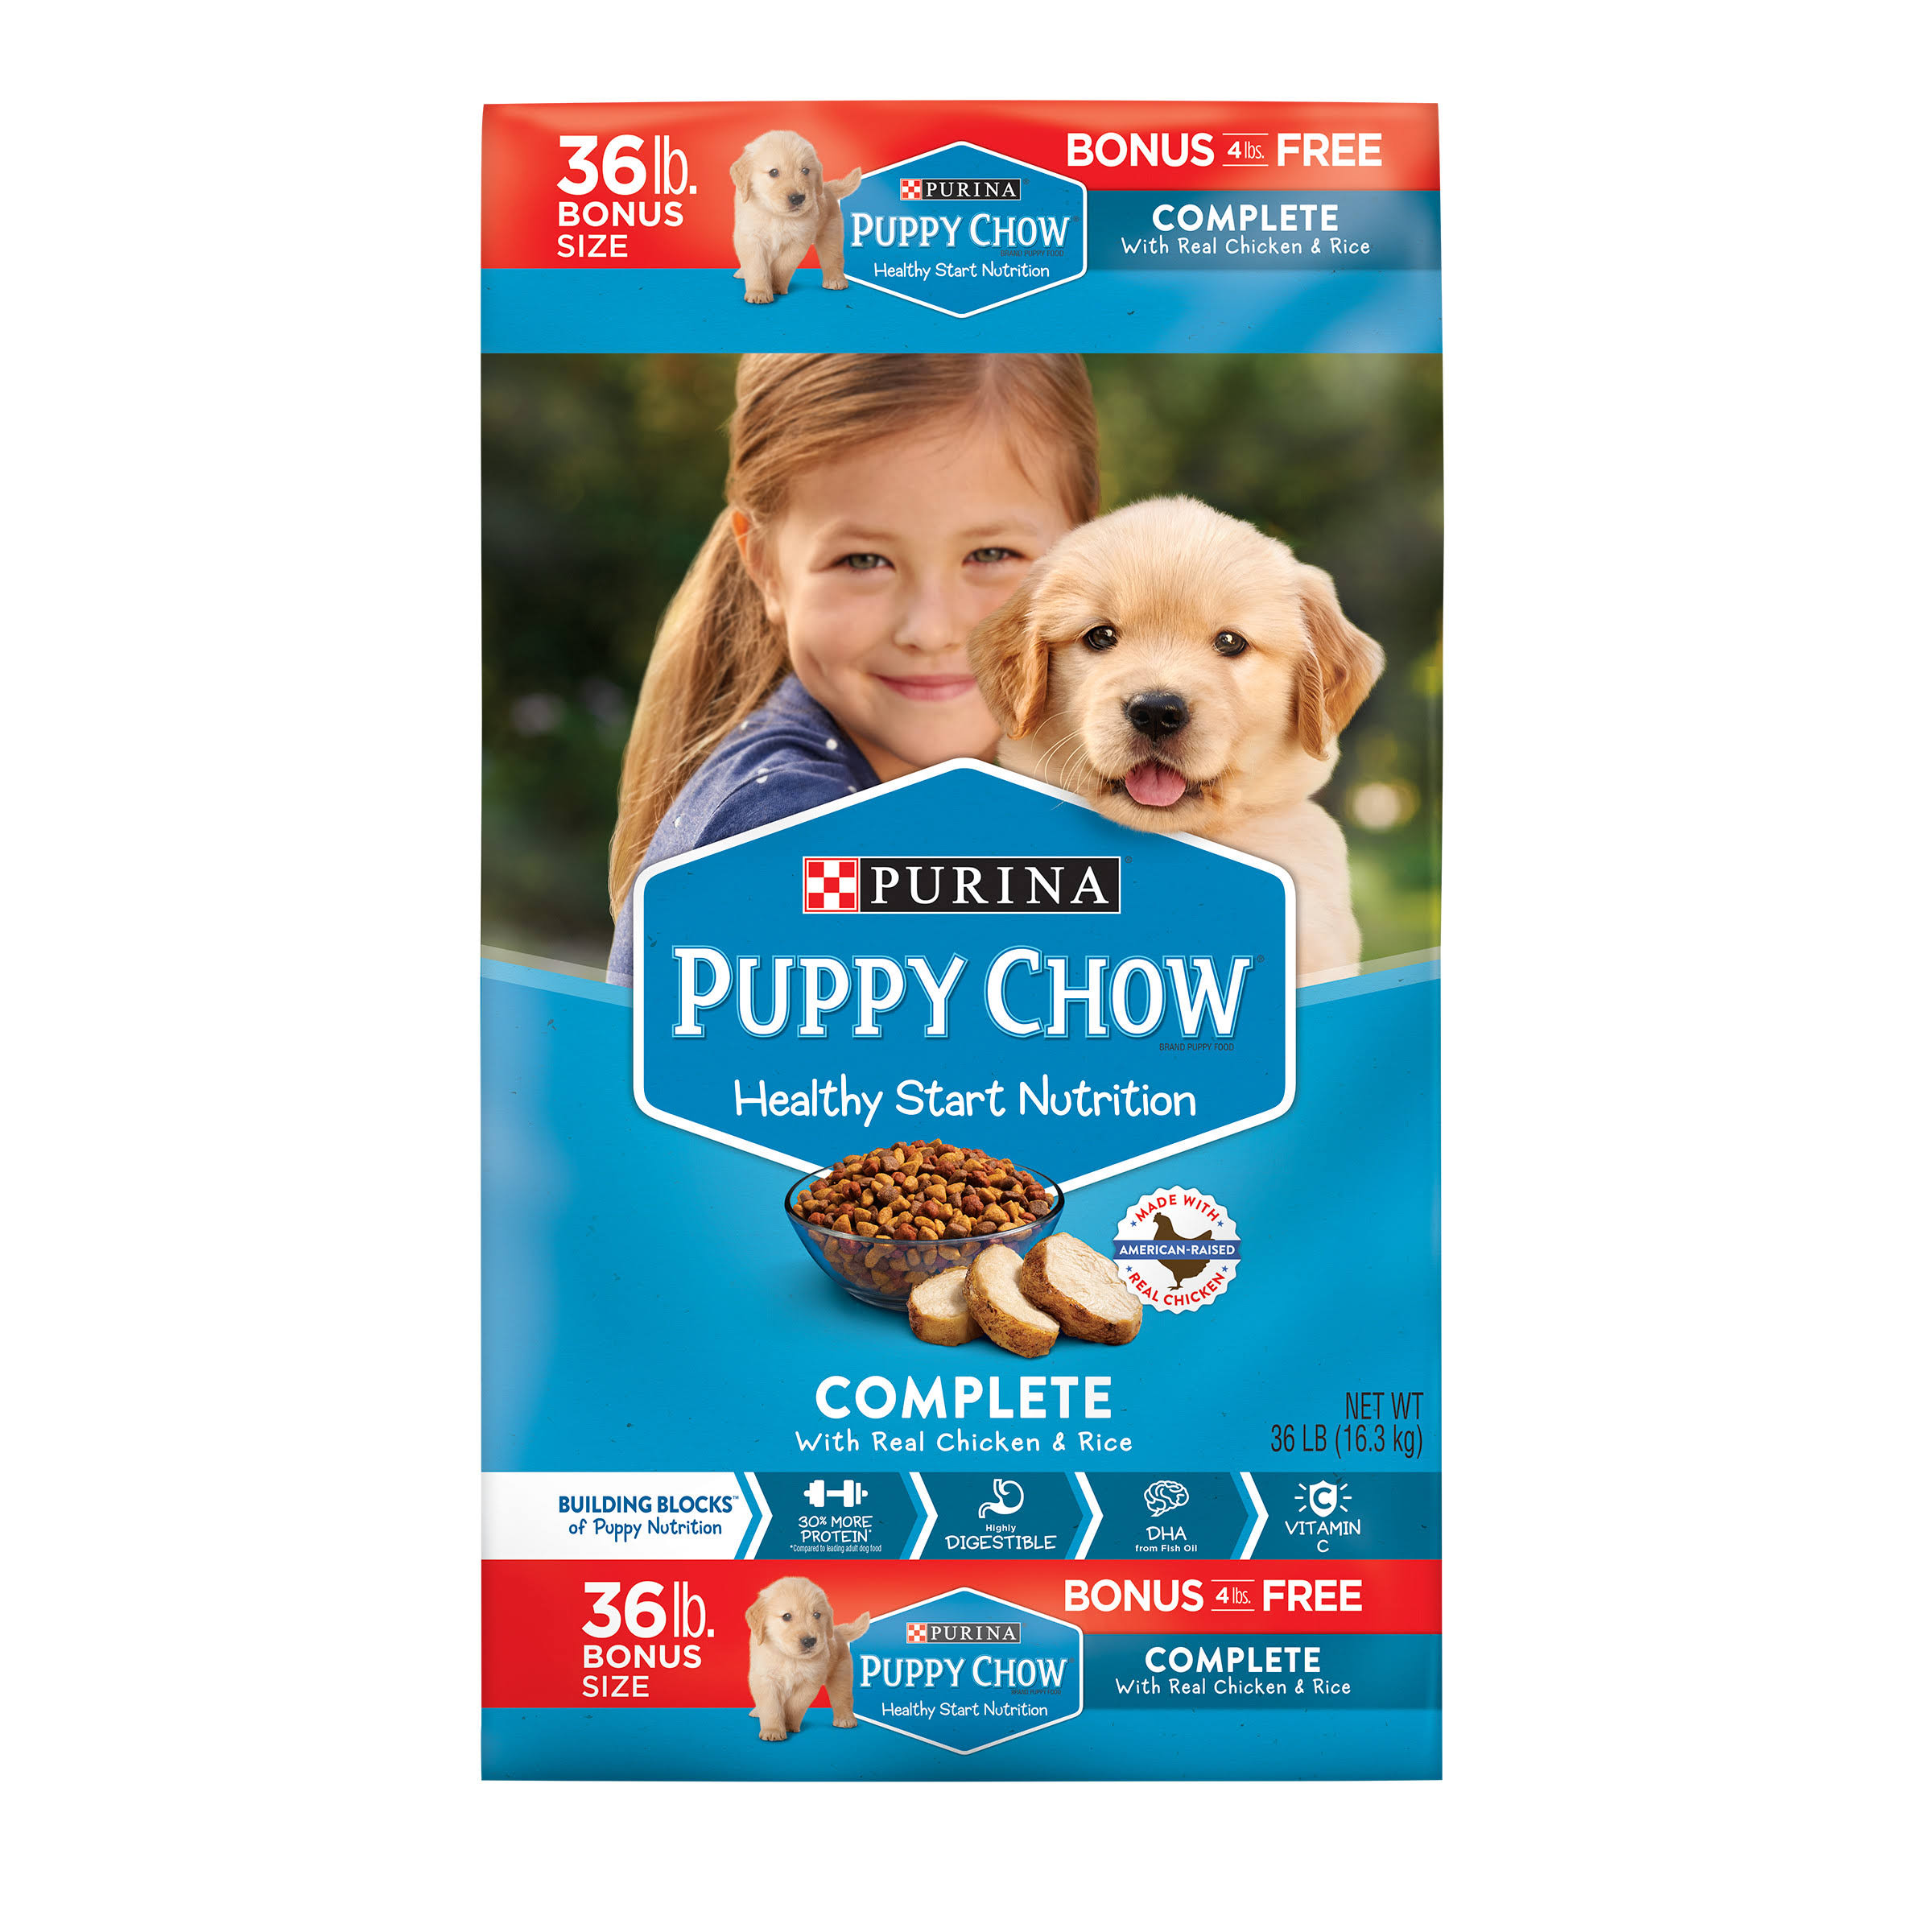 Purina Puppy Chow Complete Dog Food Bonus Size - 36lb